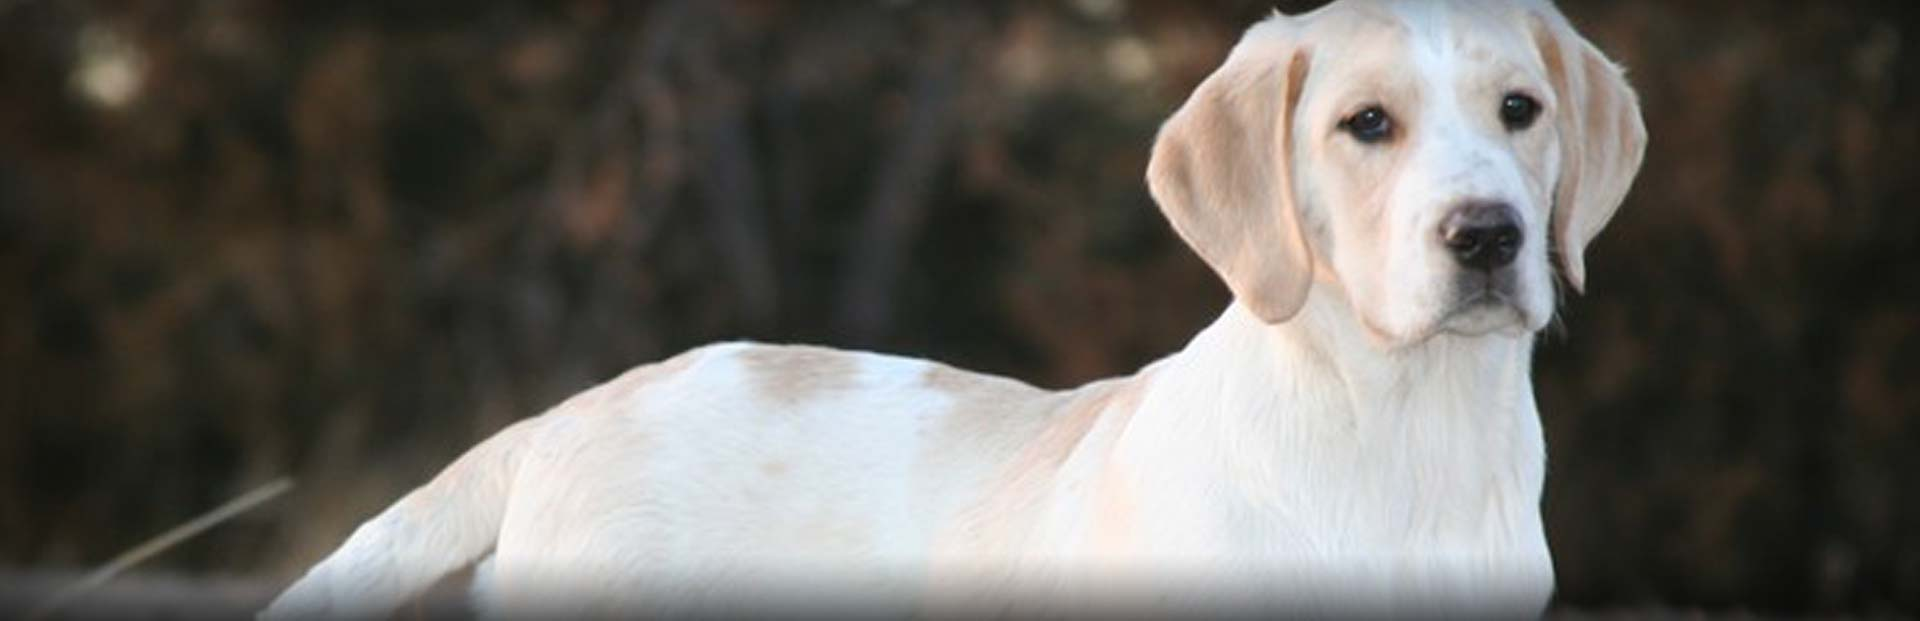 Contact Us at Hybrid Retrievers